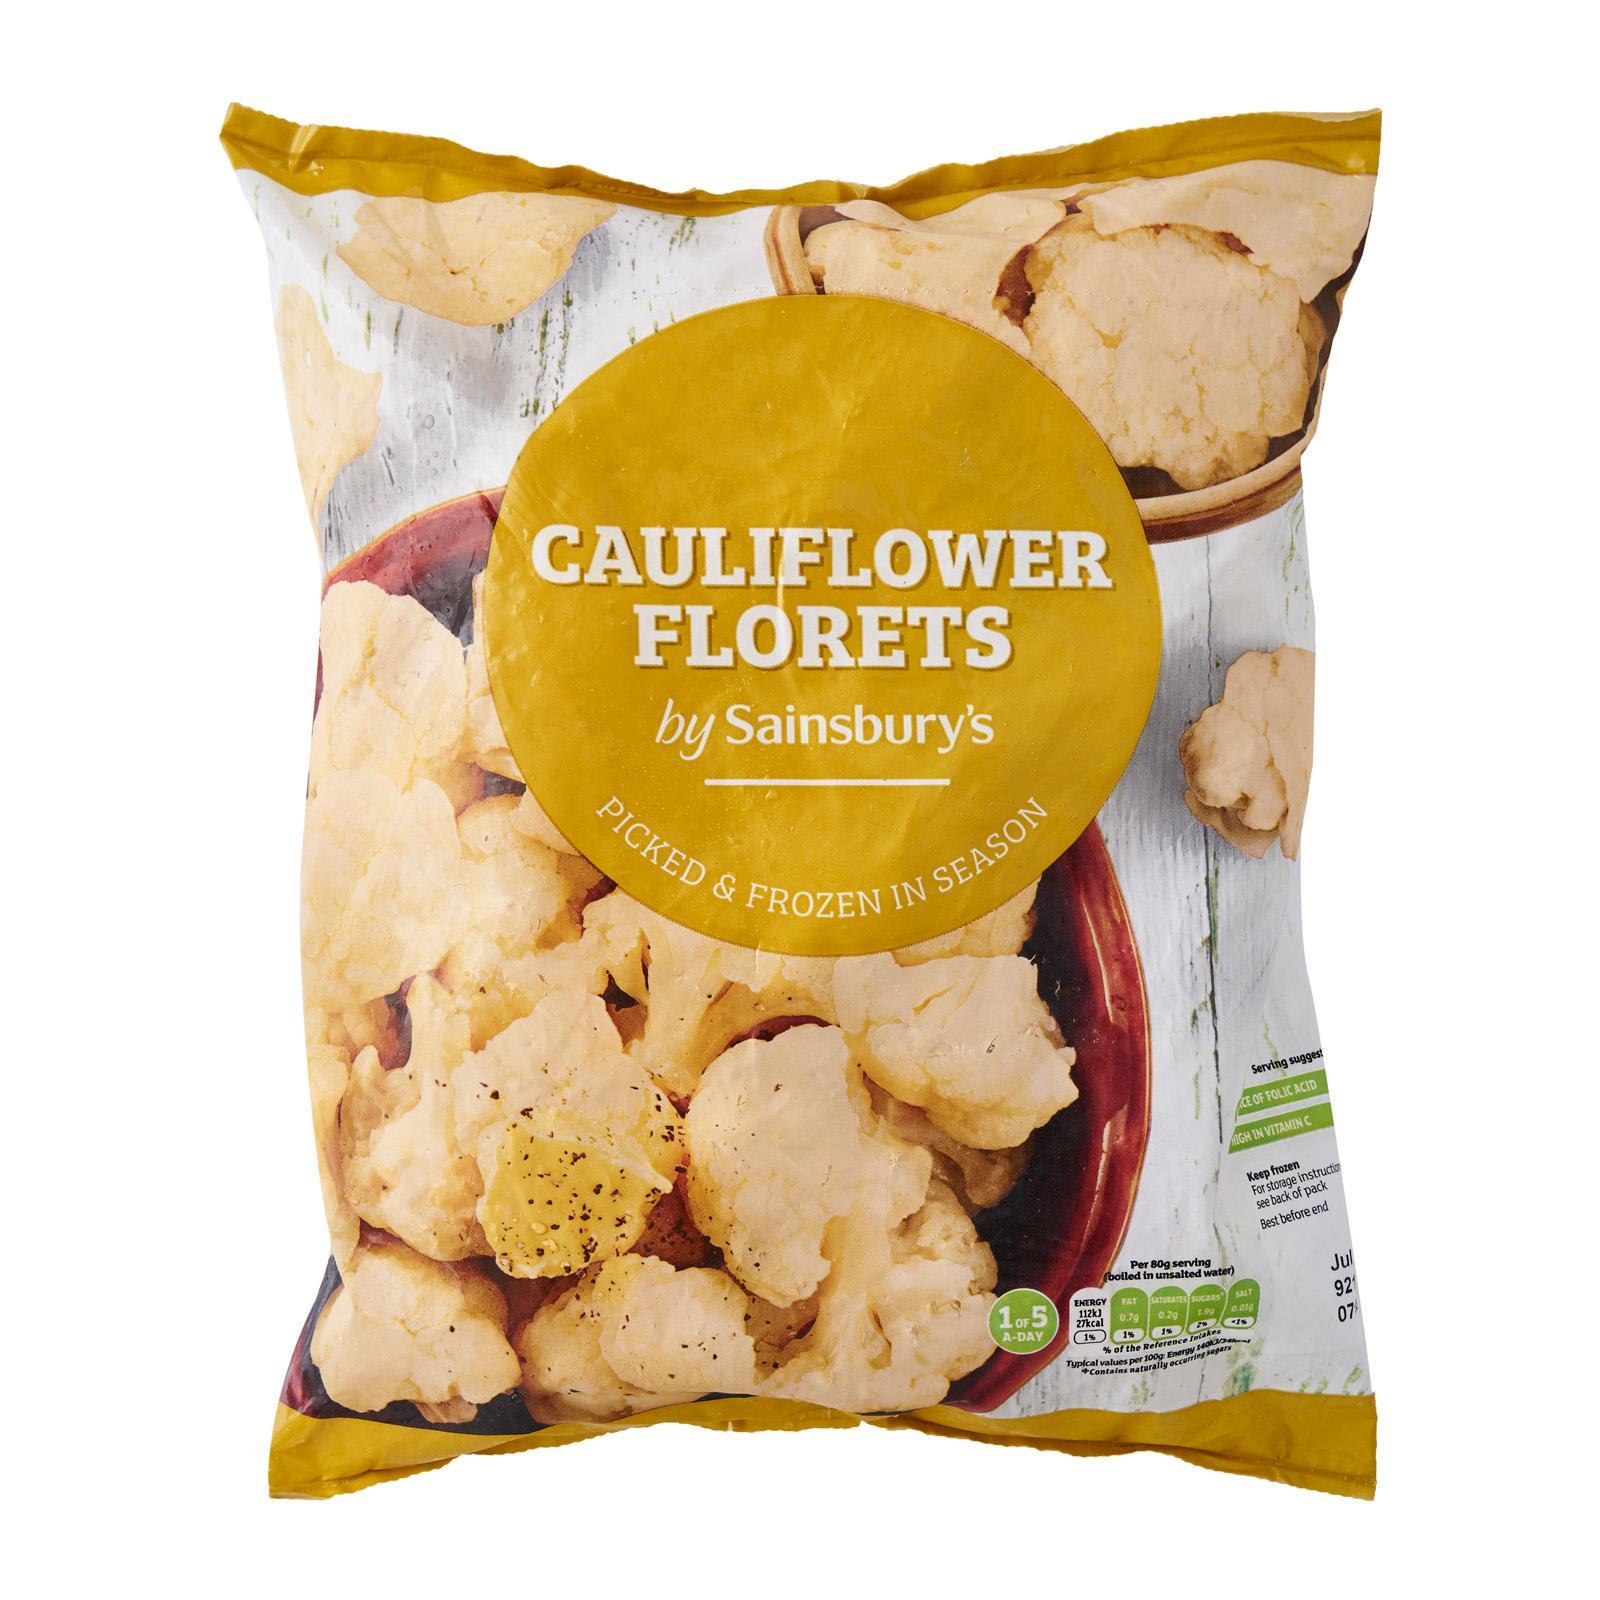 Sainsbury's Cauliflower Florets - Frozen